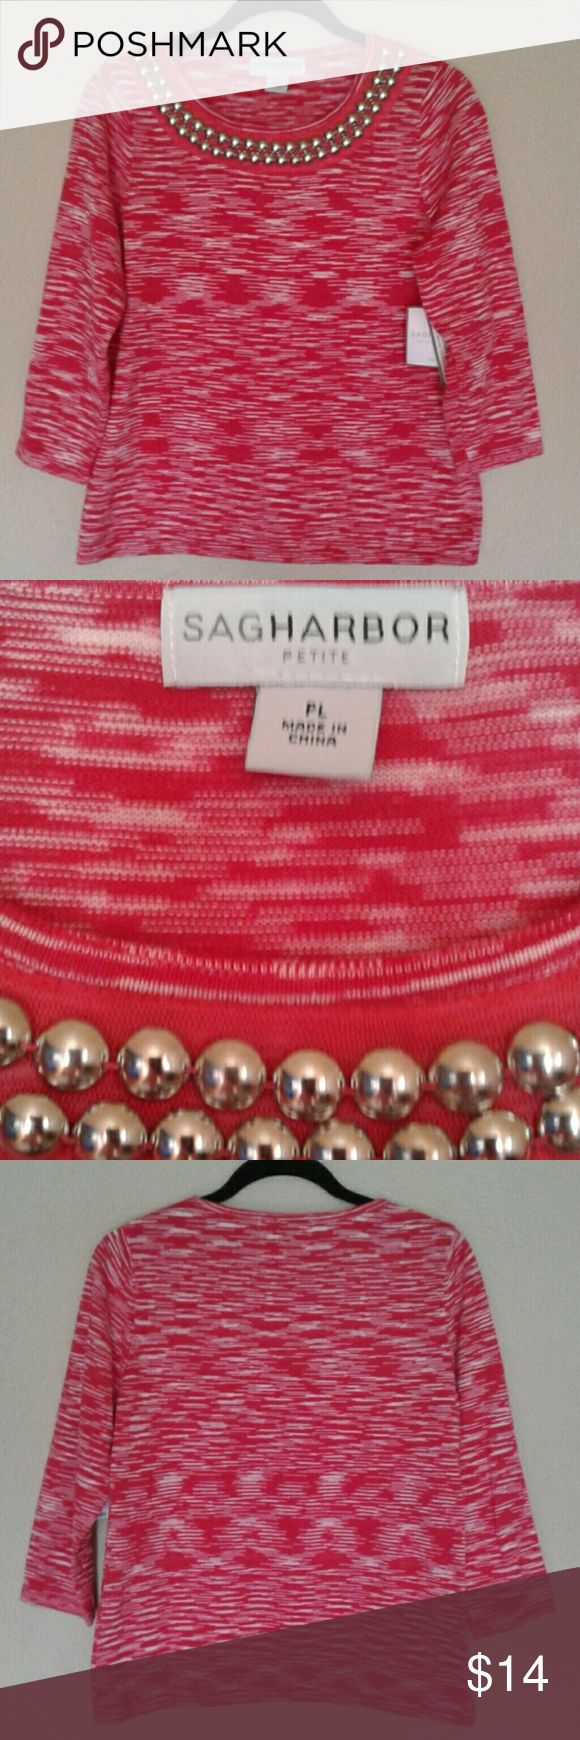 "NWT SAG HARBOR PETITE SWEATER NWT SAG HARBOR PETITE SWEATER with Decorative Neckline.  18"" from under arm to under arm. 23 1/2"" from shoulder to bottom hem. 19 1/2"" across hem. 100% Cotton SAG HARBOR PETITE  Sweaters"